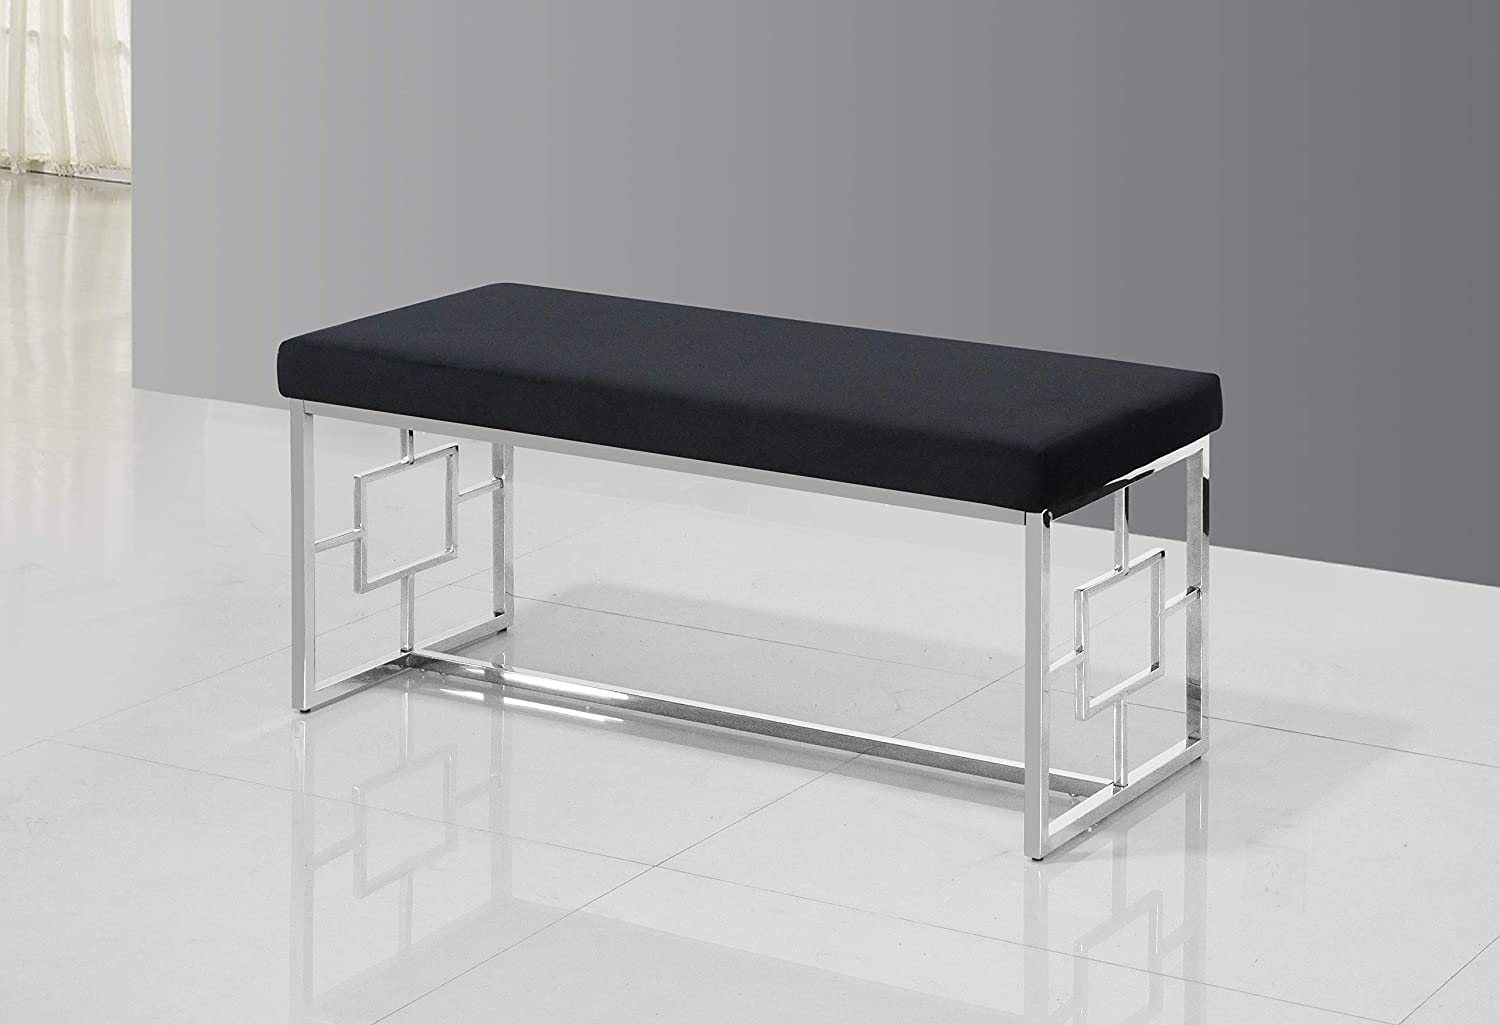 Best Master Furniture Emery Velour Bench with Stainless Steel Frame, Black